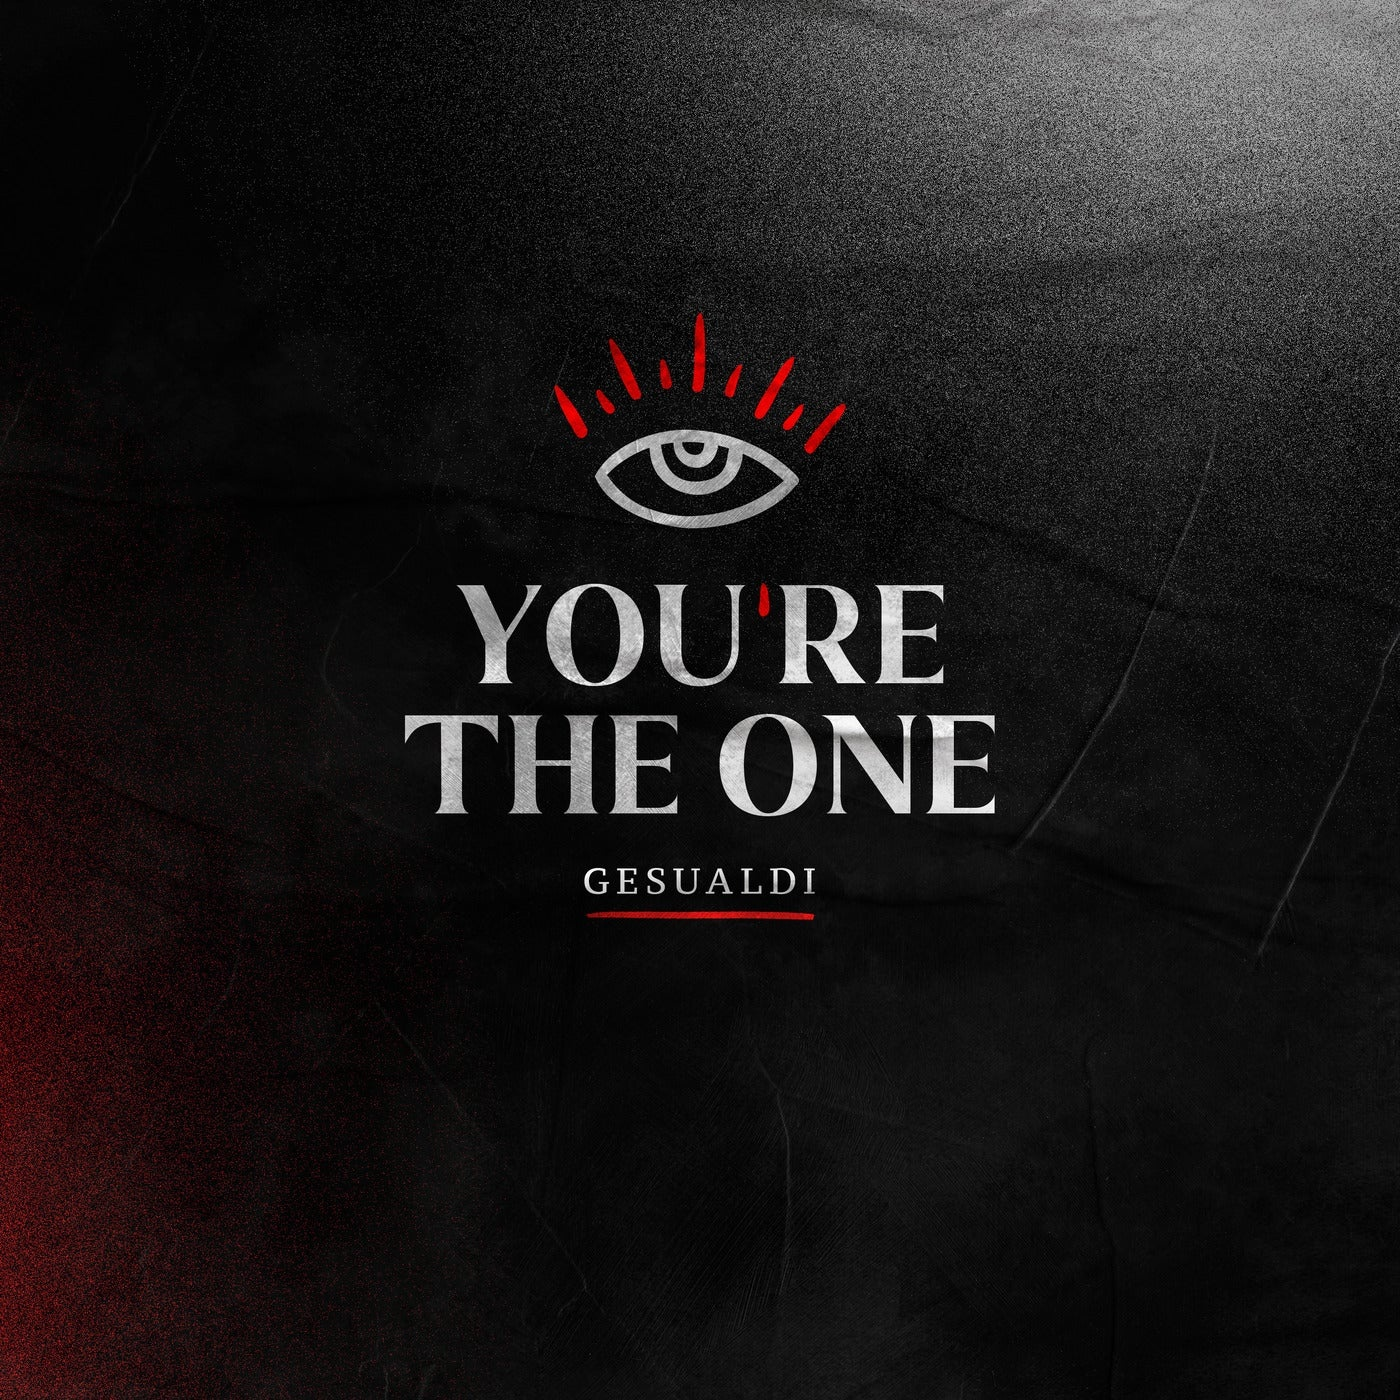 Cover - Gesualdi - You're The One (Extended Mix)